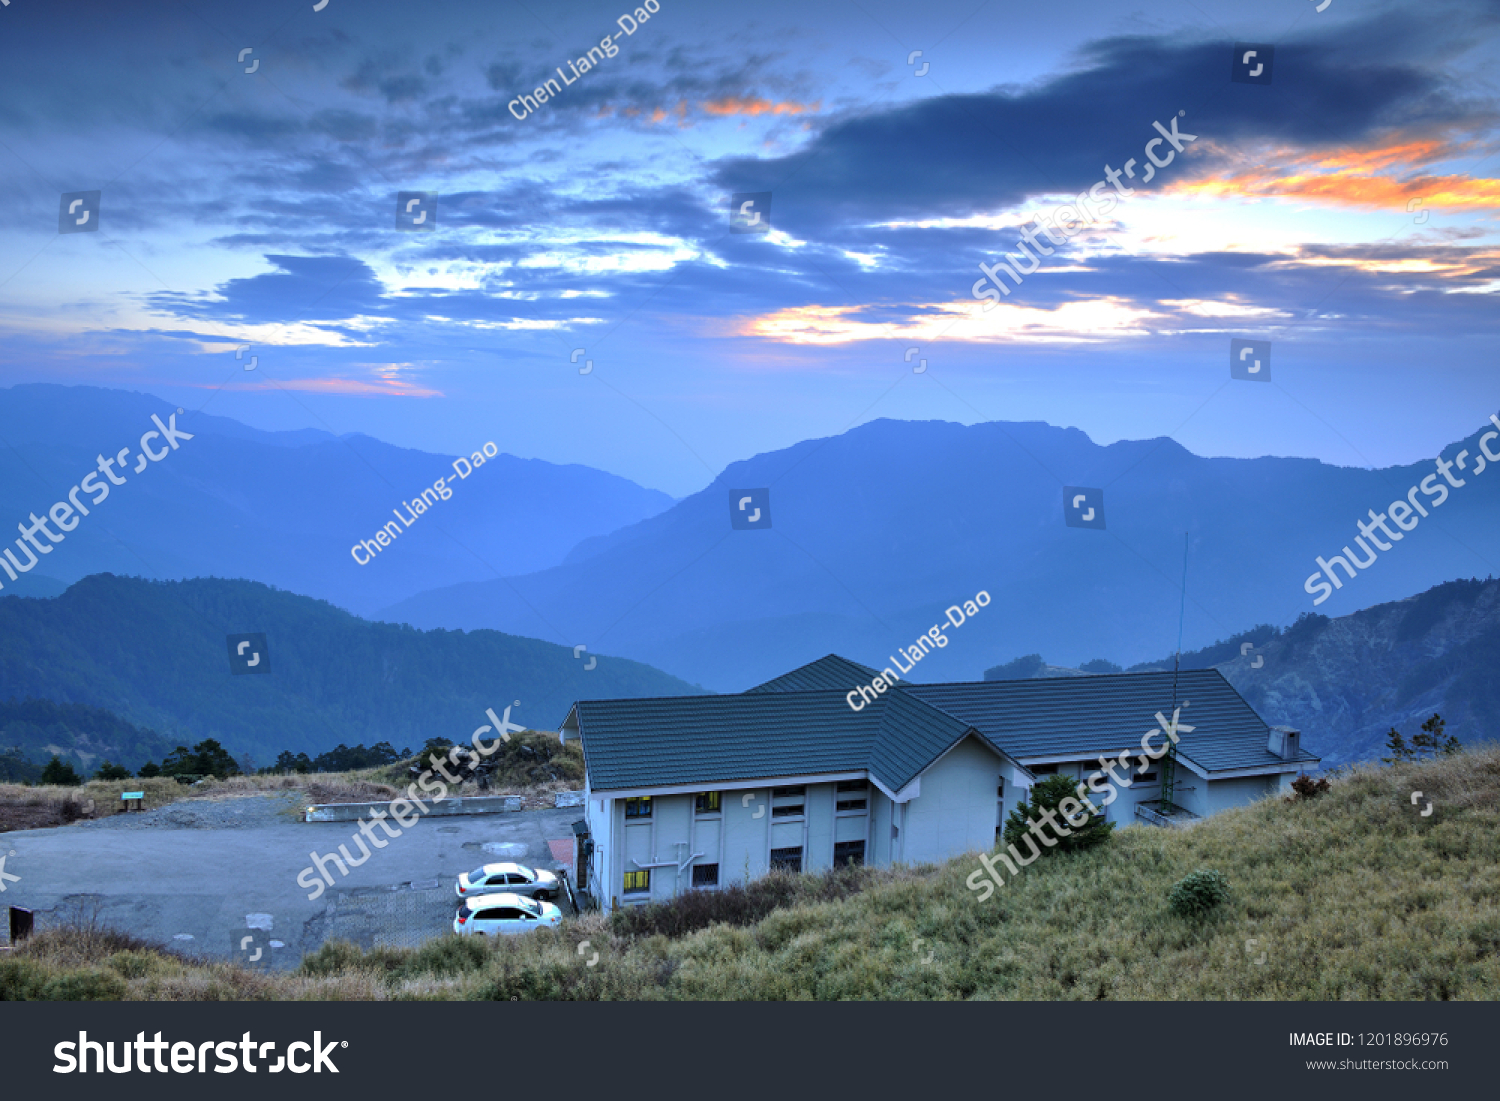 On the high mountains of the continuous mountains, the blue roofs of the white walls of the building, the blue sky has orange clouds. #1201896976